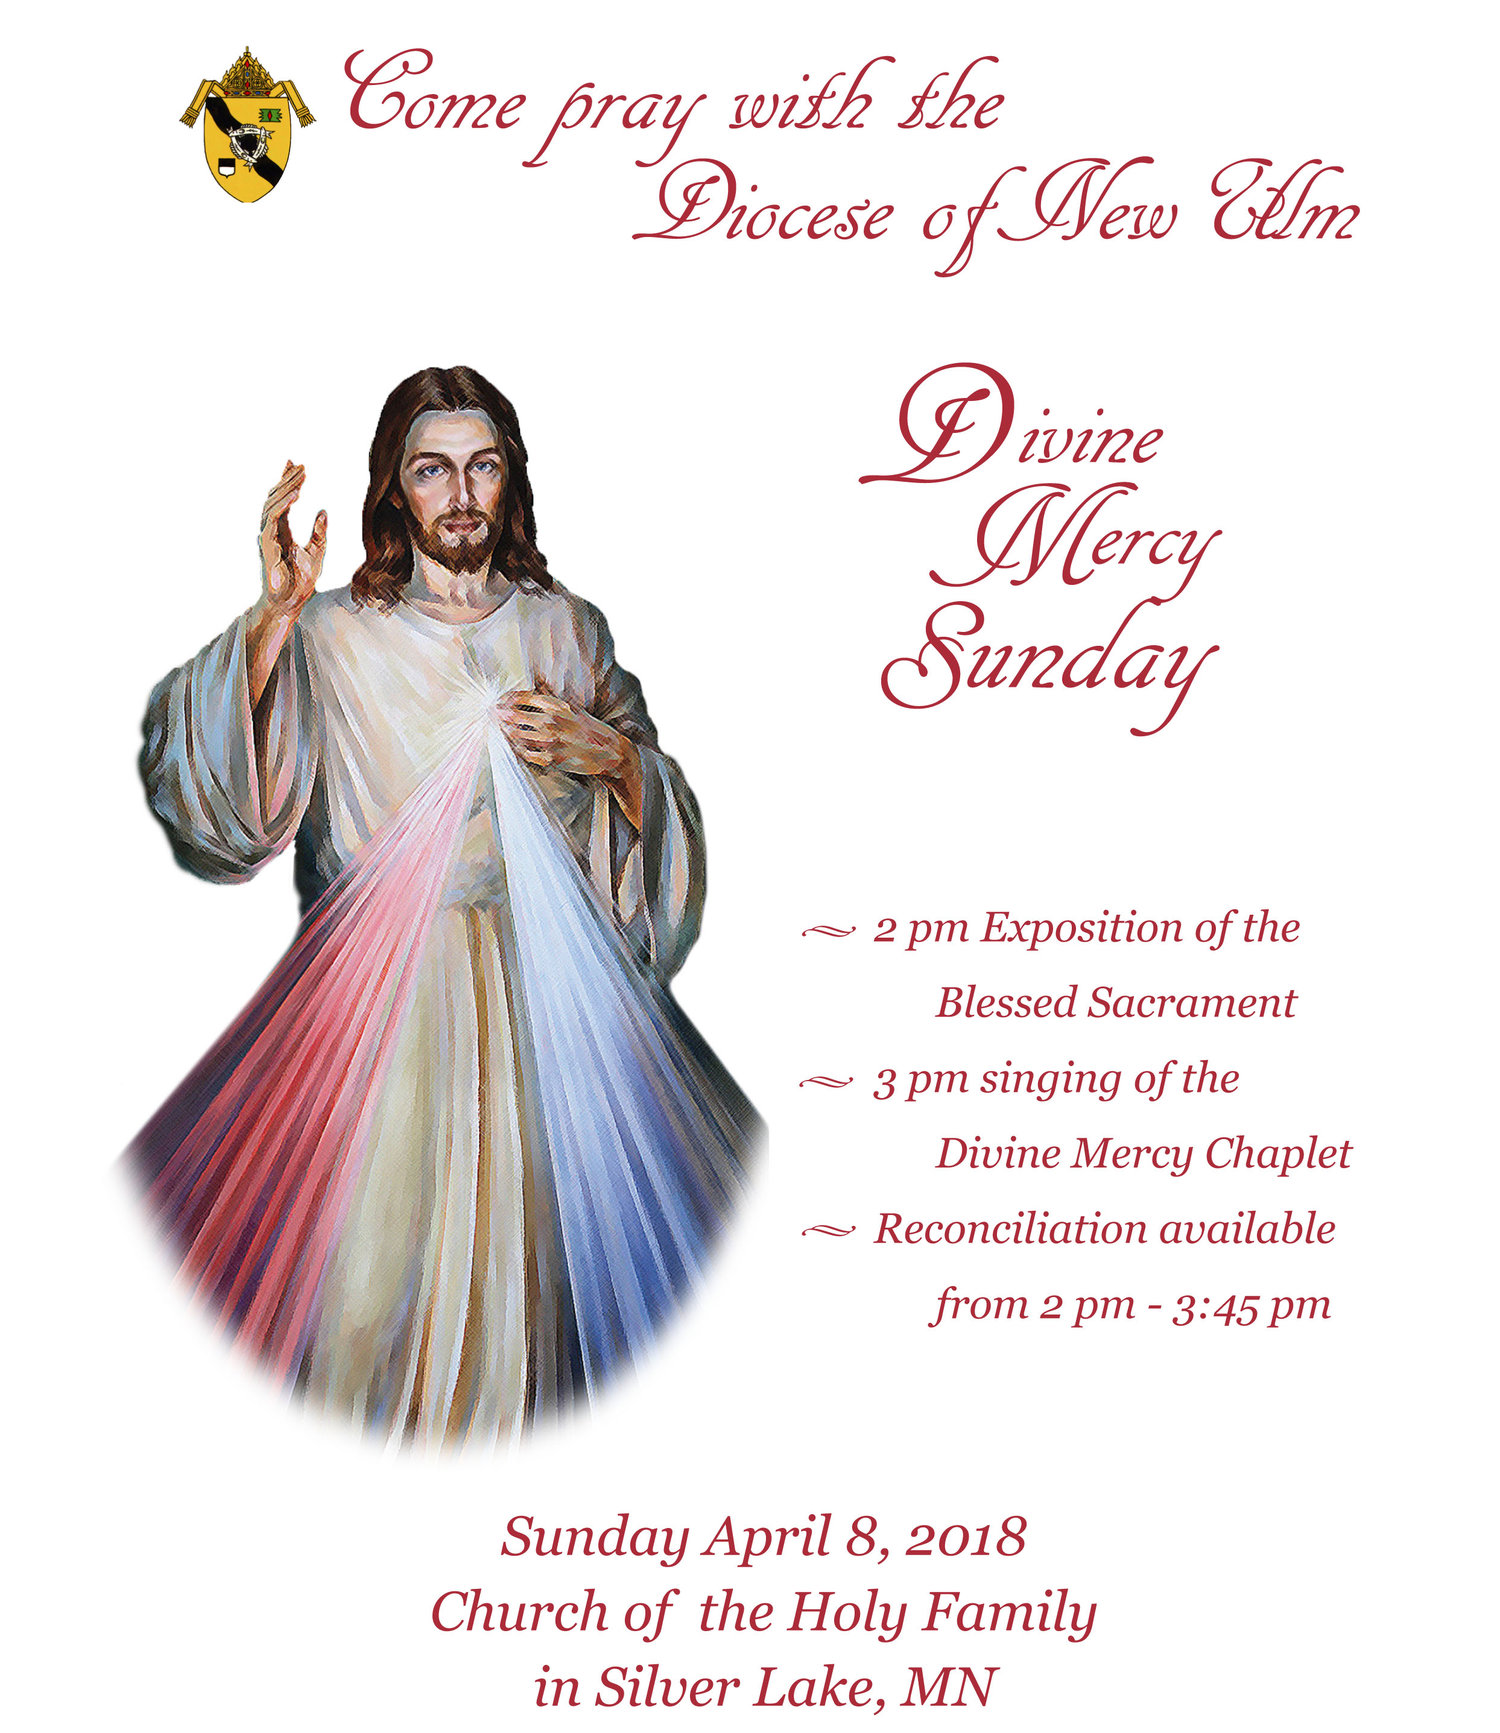 divine mercy sunday holy family silver lake diocese of new ulm